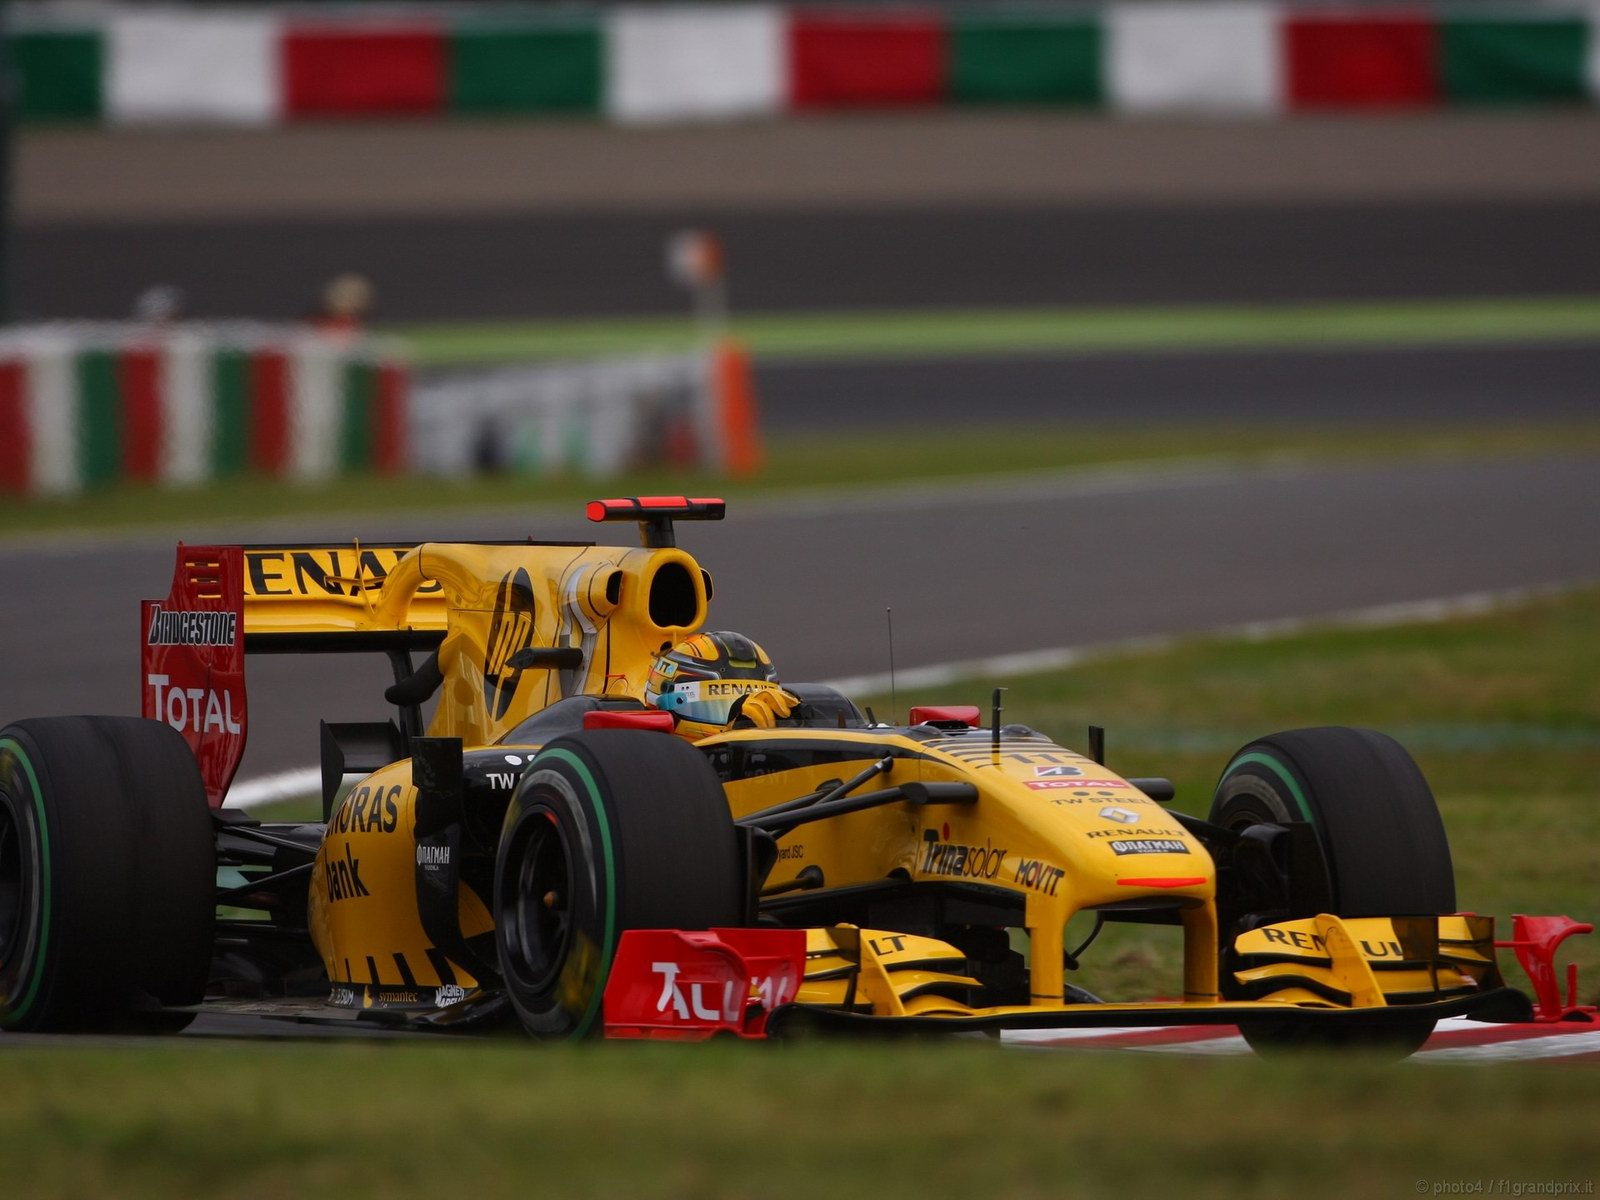 pojazdy - formula1 - gp_giappone_wallpapers_000049